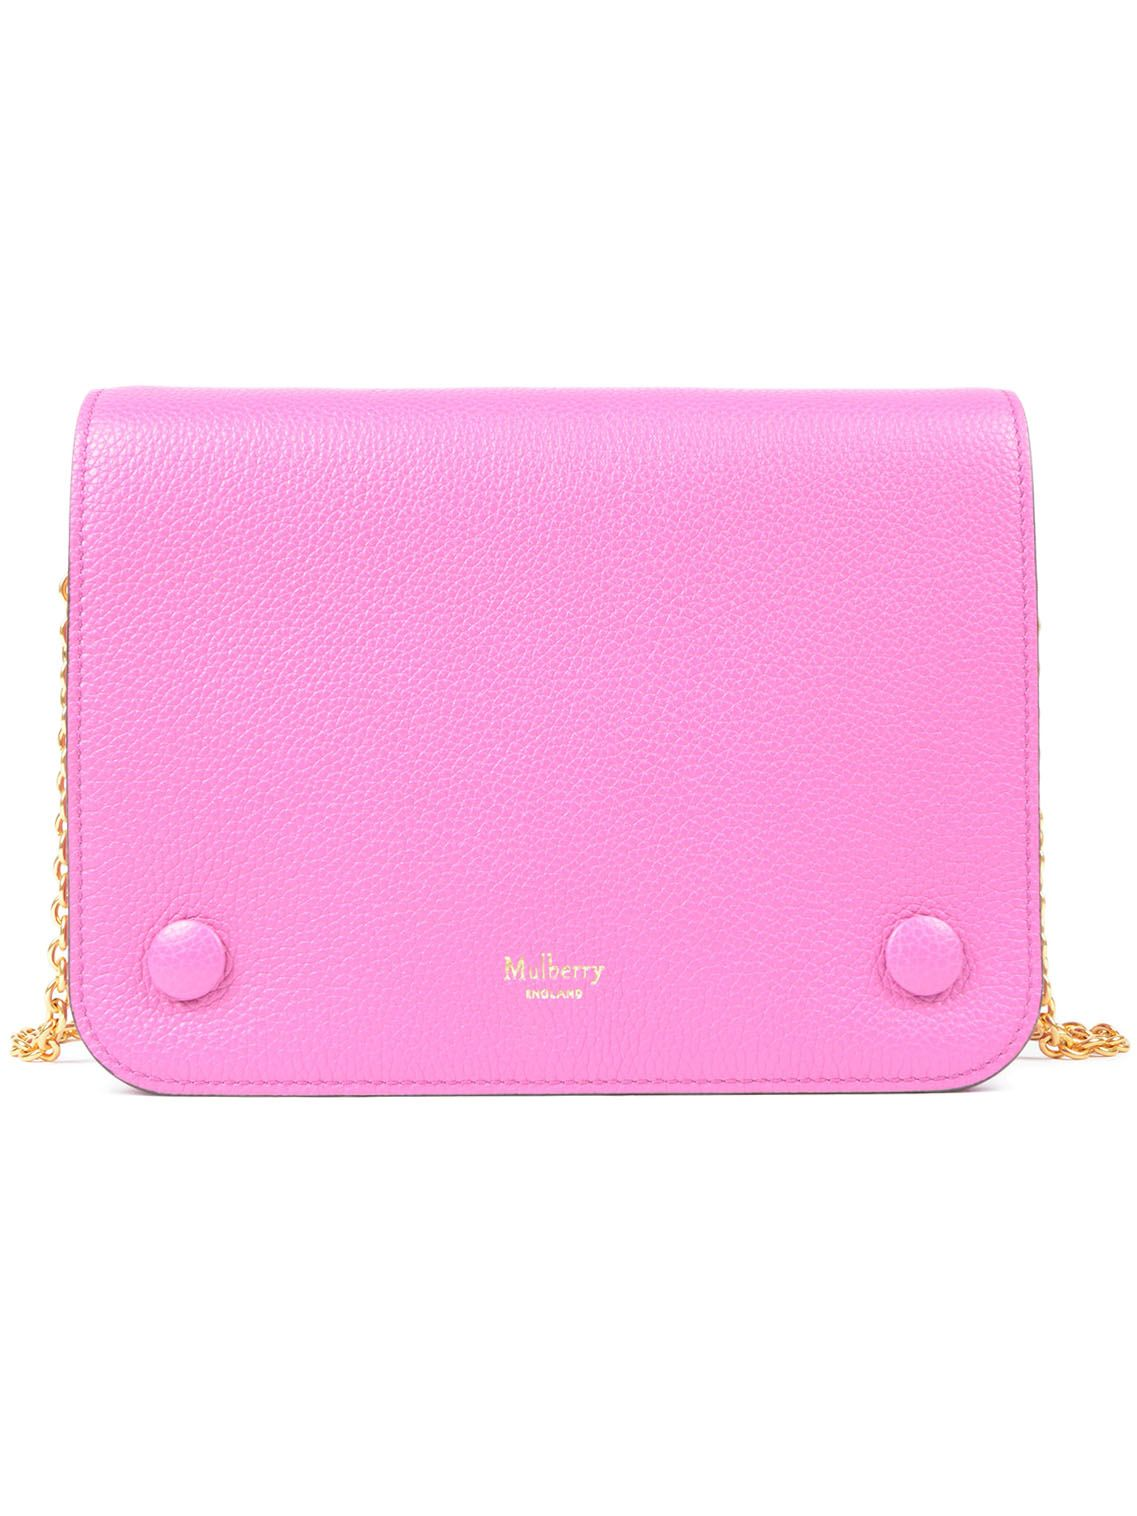 Mulberry Clifton Small Crossbody Bag